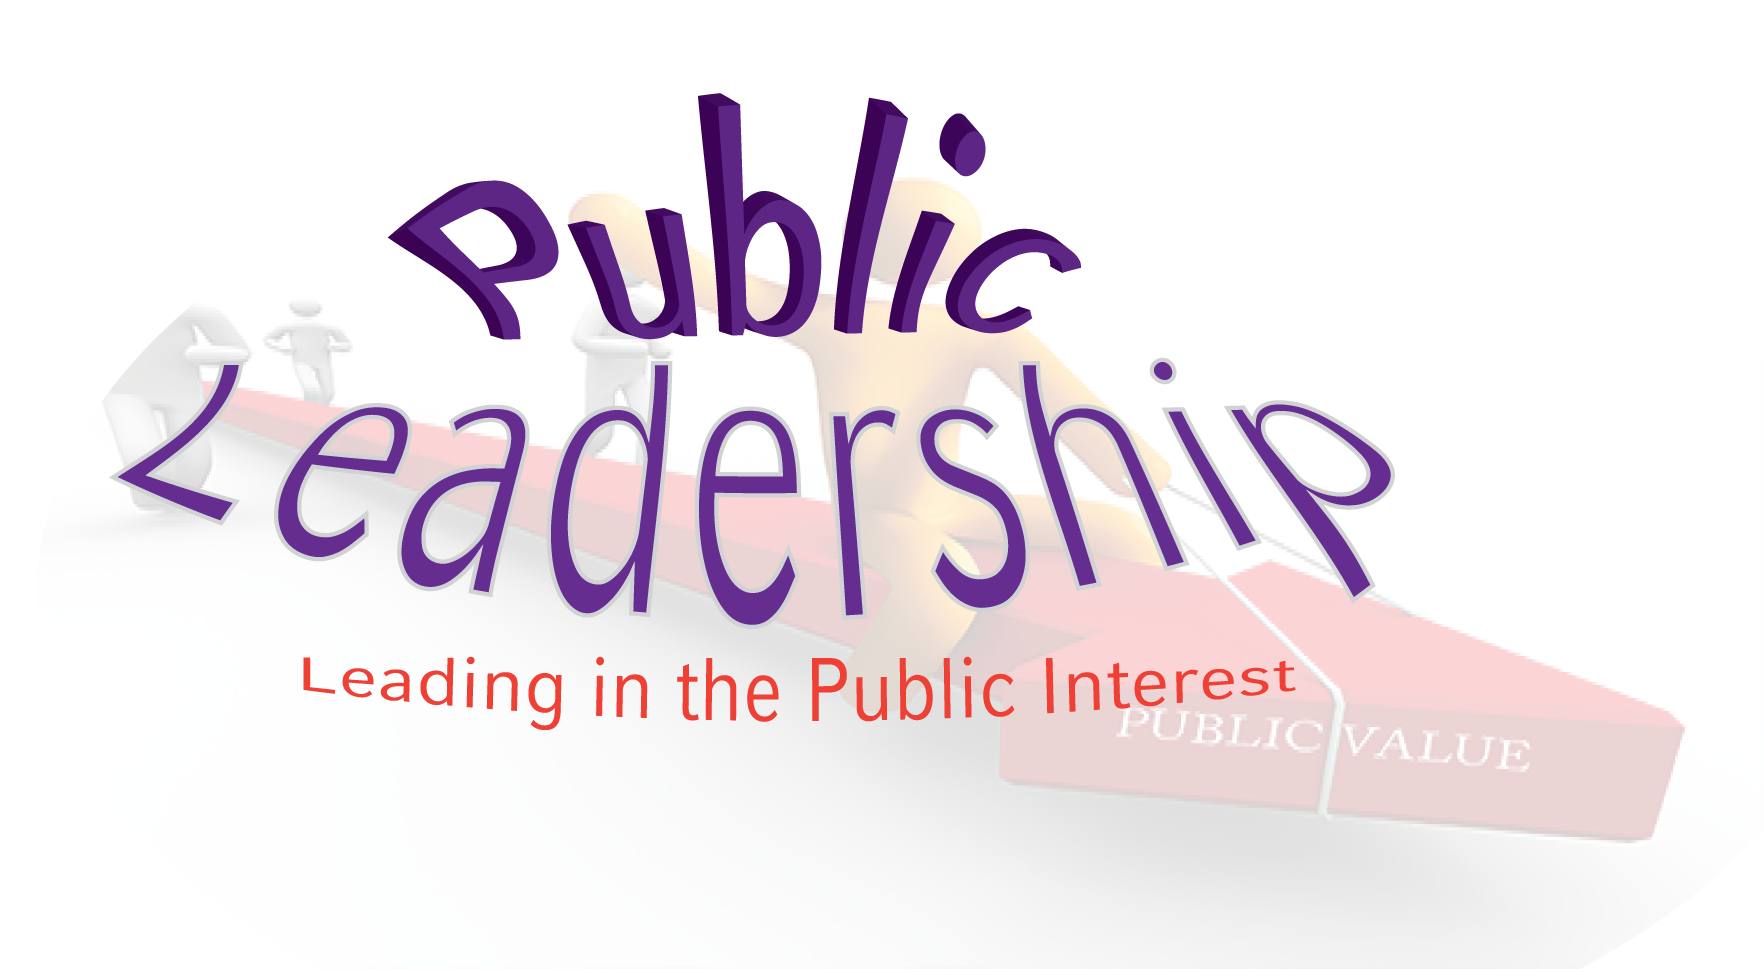 Public Leadership Forum